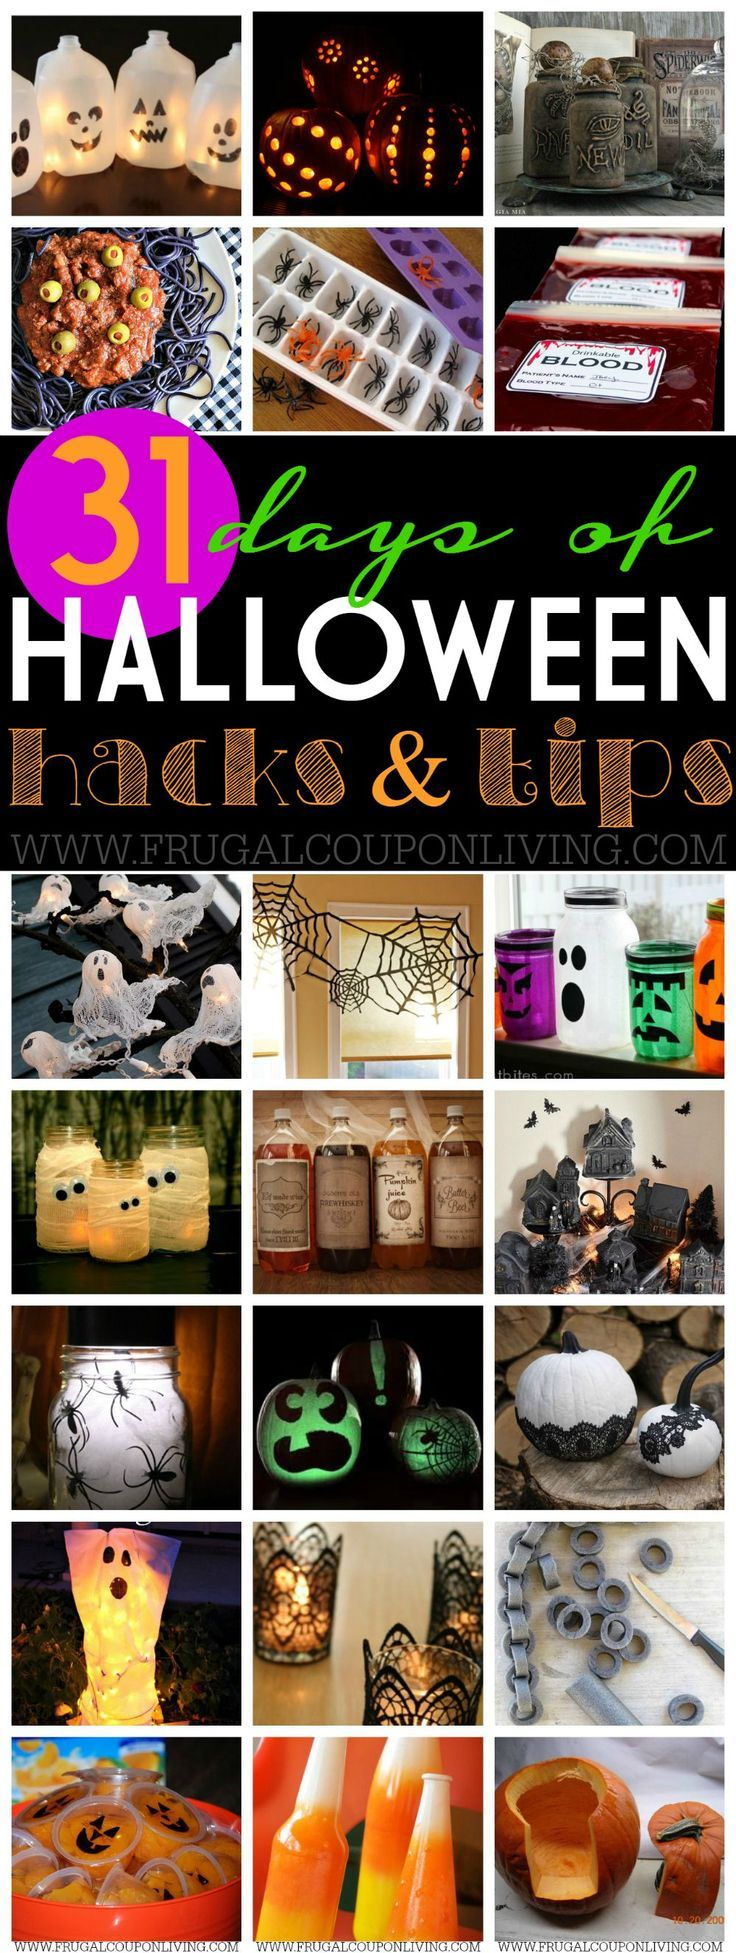 31 Days of Halloween Hacks & Tips on Frugal Coupon Living. Last minute decorations, pumpkin carving tips, DIY Halloween crafts and more! Great Halloween Ideas for the month of October!